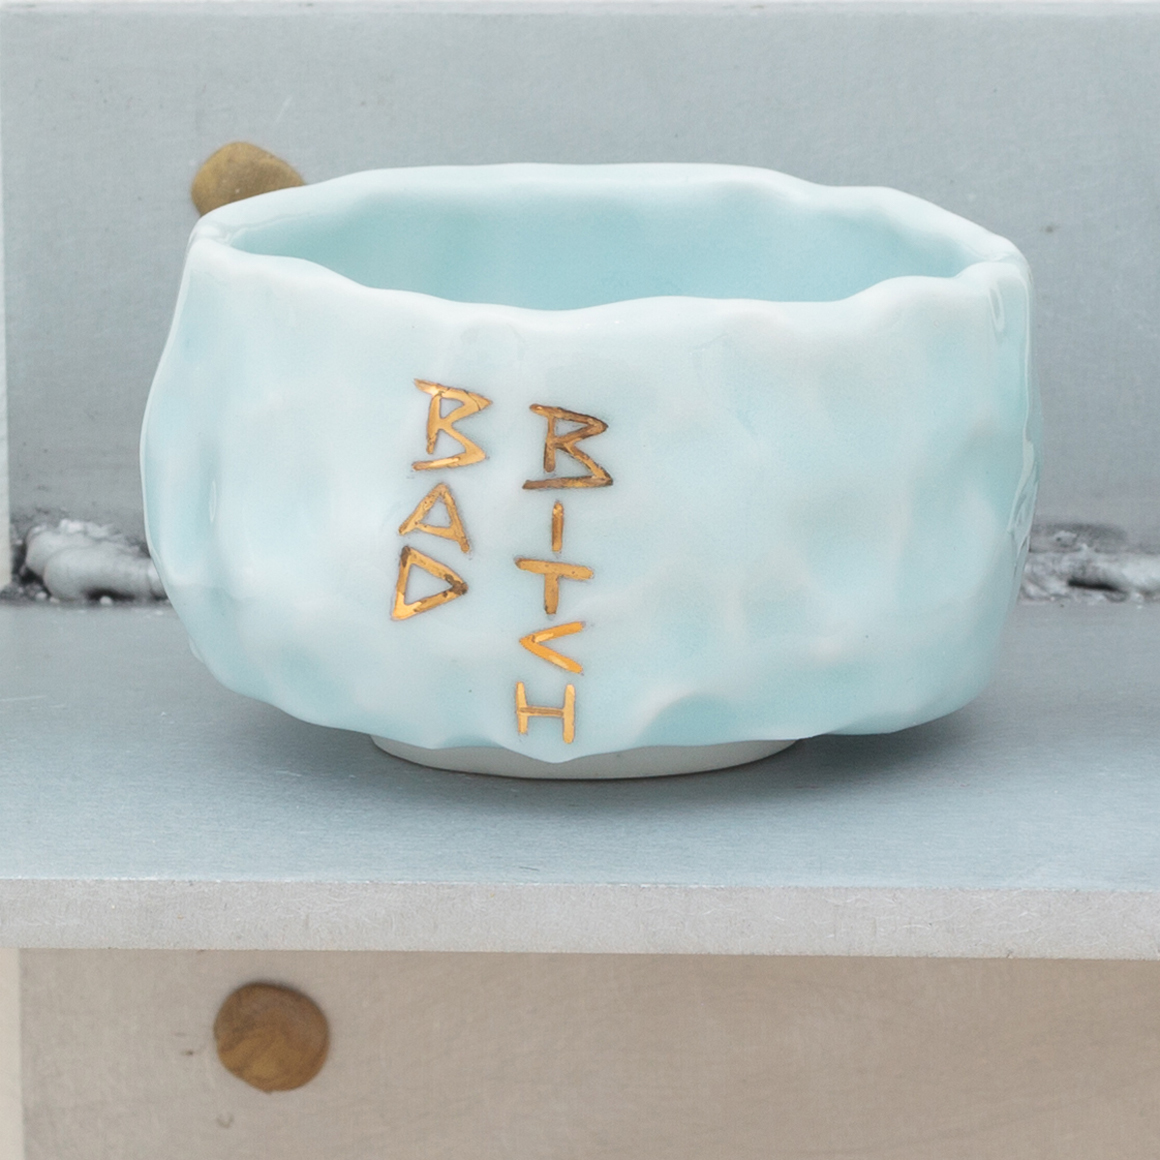 "<p><span class=""name"">Patrice Renee Washington</span><br><em>Bad Bitch Cup (3)</em><span class='media'>Glazed porcelain, gold luster, aluminum, Sculpey clay</span>2.1625 x 2.75 x 2.75 in  (5.5 x 7 x 7 cm)<br>2016<br><a class='inquire' href='mailto:info@gildargallery.com?subject=Artwork Inquiry PWAS0004&body=I am interested in finding out more about Bad Bitch Cup (3) by Patrice Renee Washington'>Inquire</a></p>"